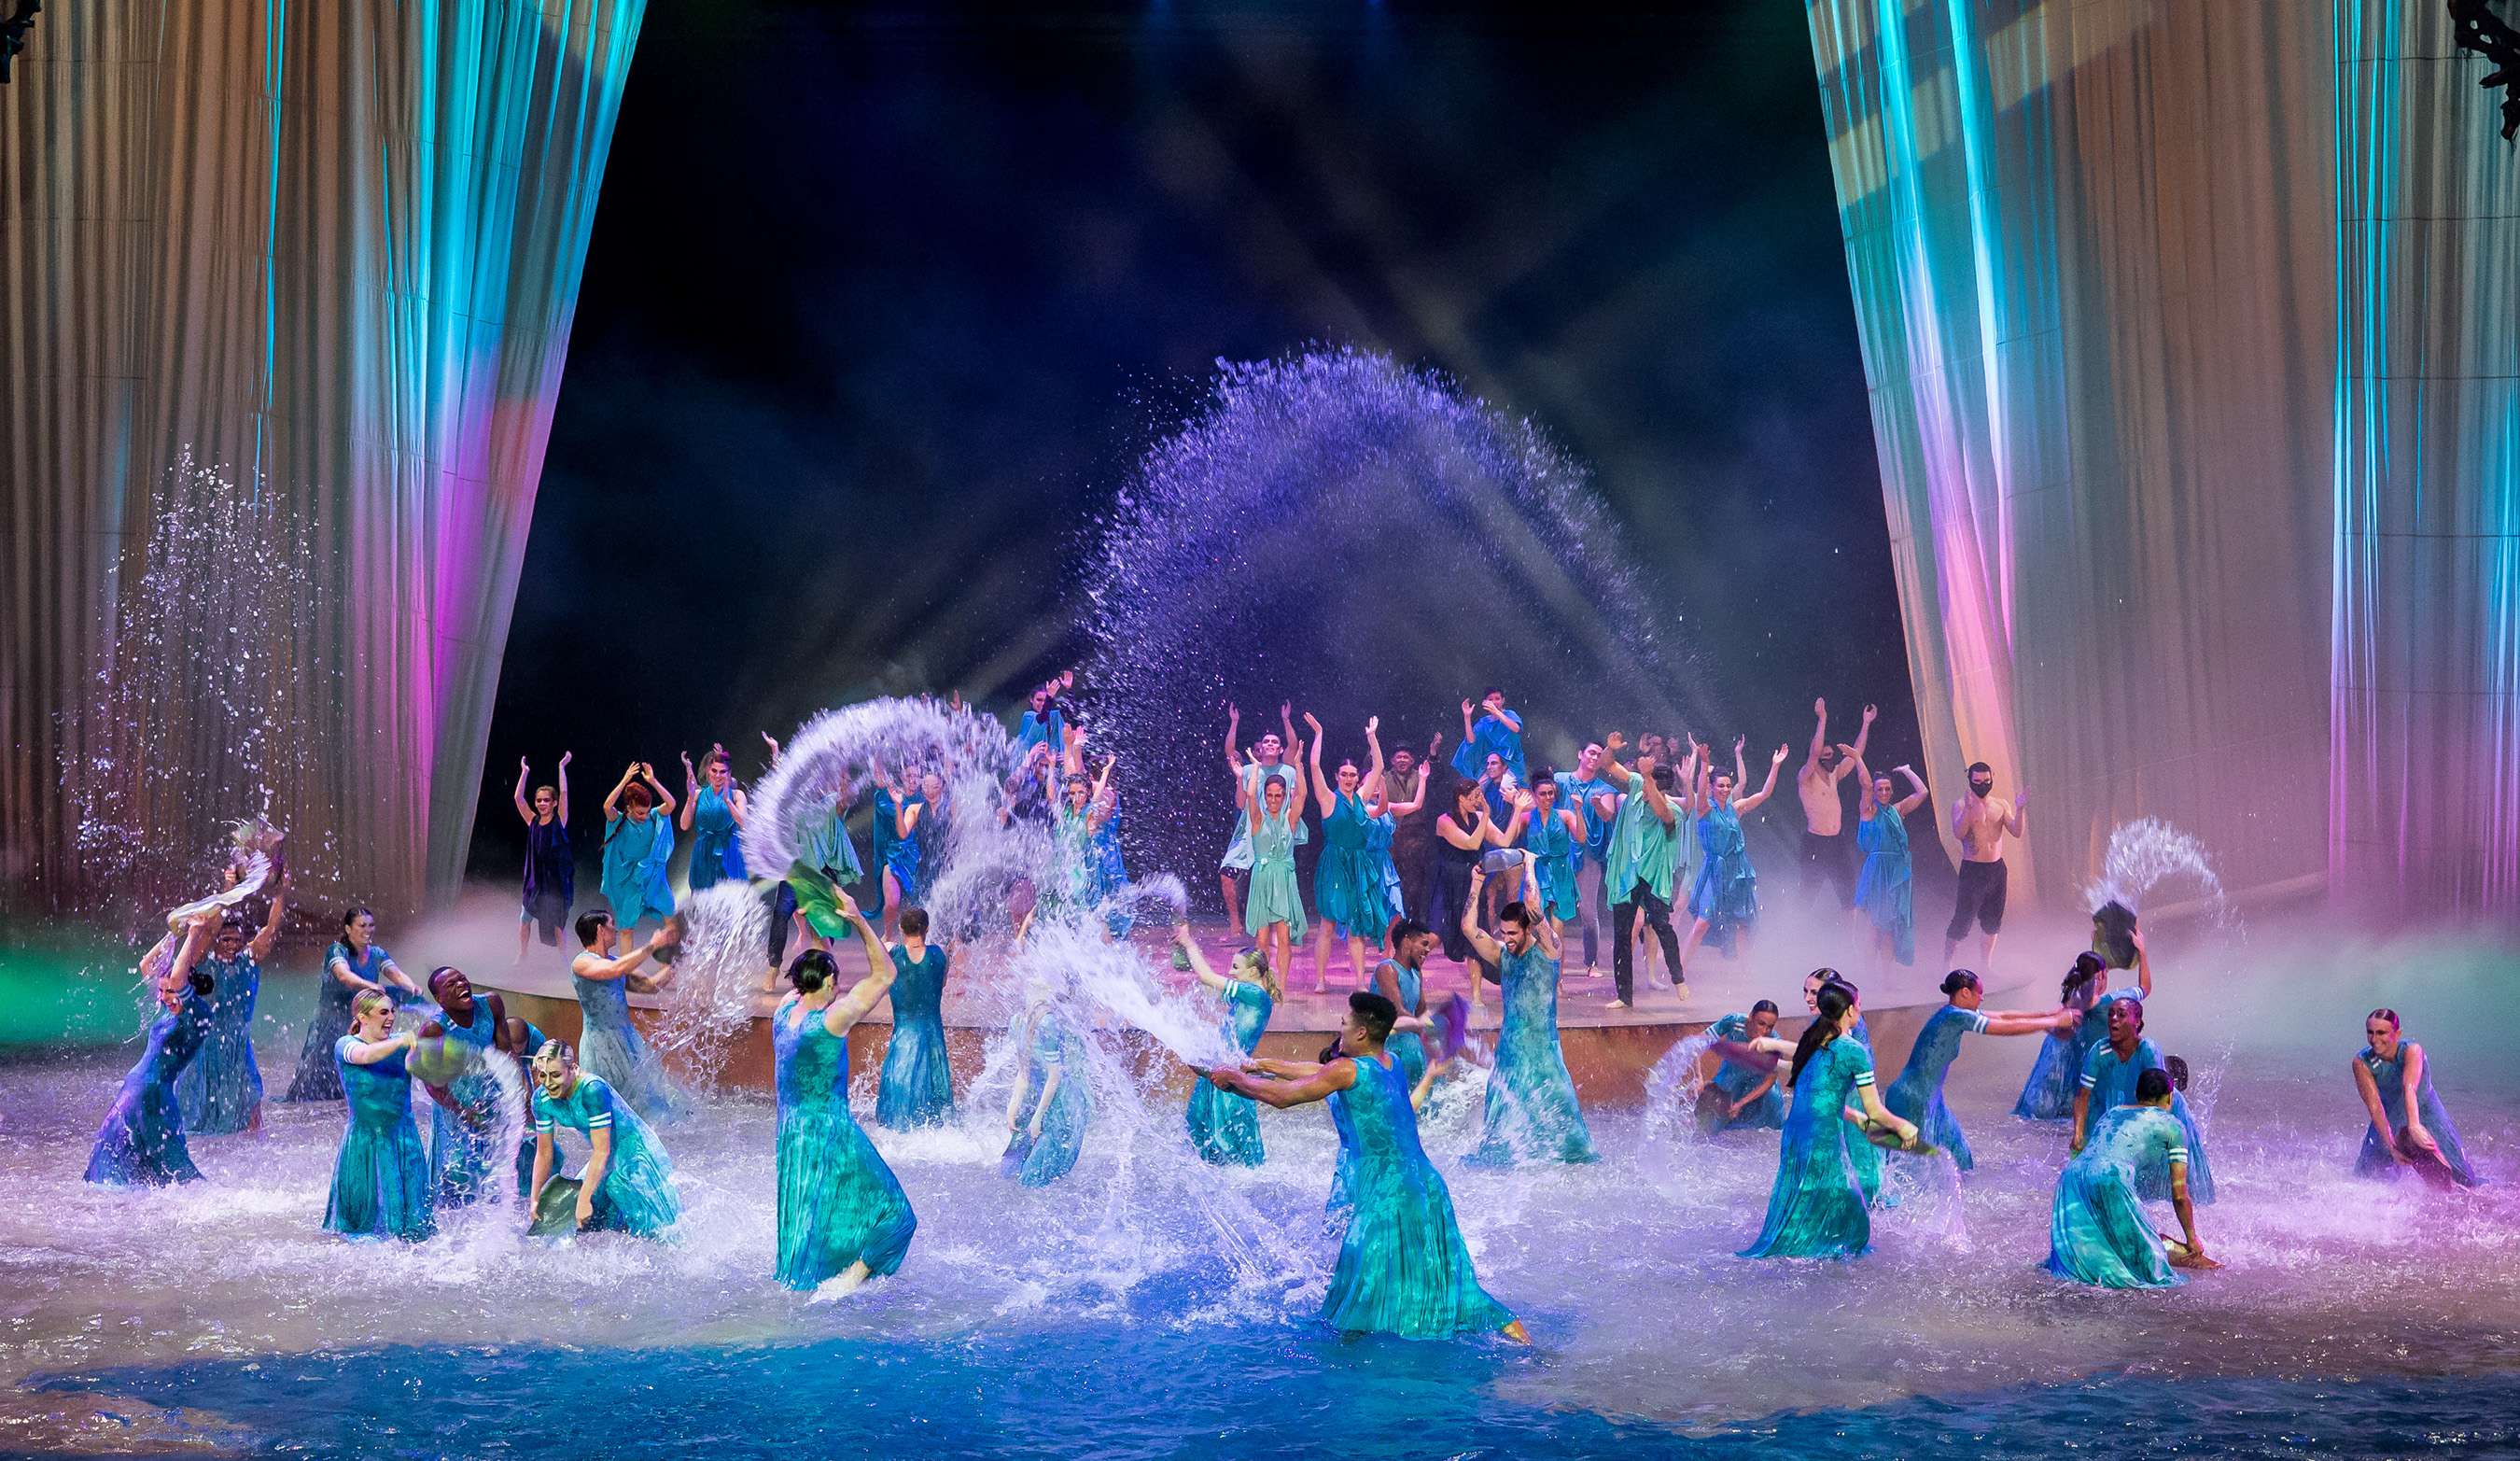 Seventh Annual One Night for One Drop Performance at Bellagio Resort & Casino, March 8 2019